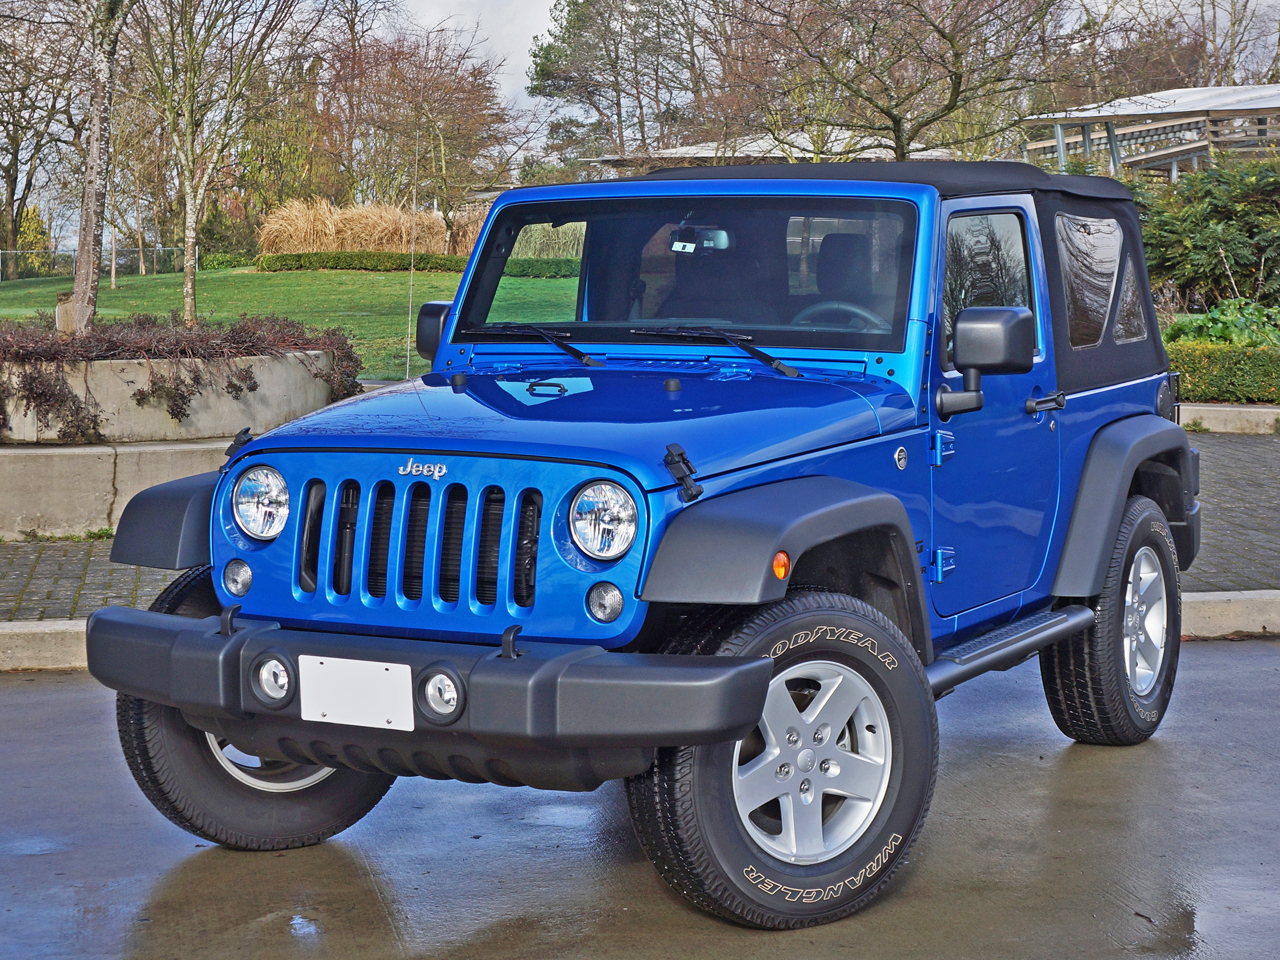 2016 jeep wrangler sport s road test review carcostcanada. Black Bedroom Furniture Sets. Home Design Ideas